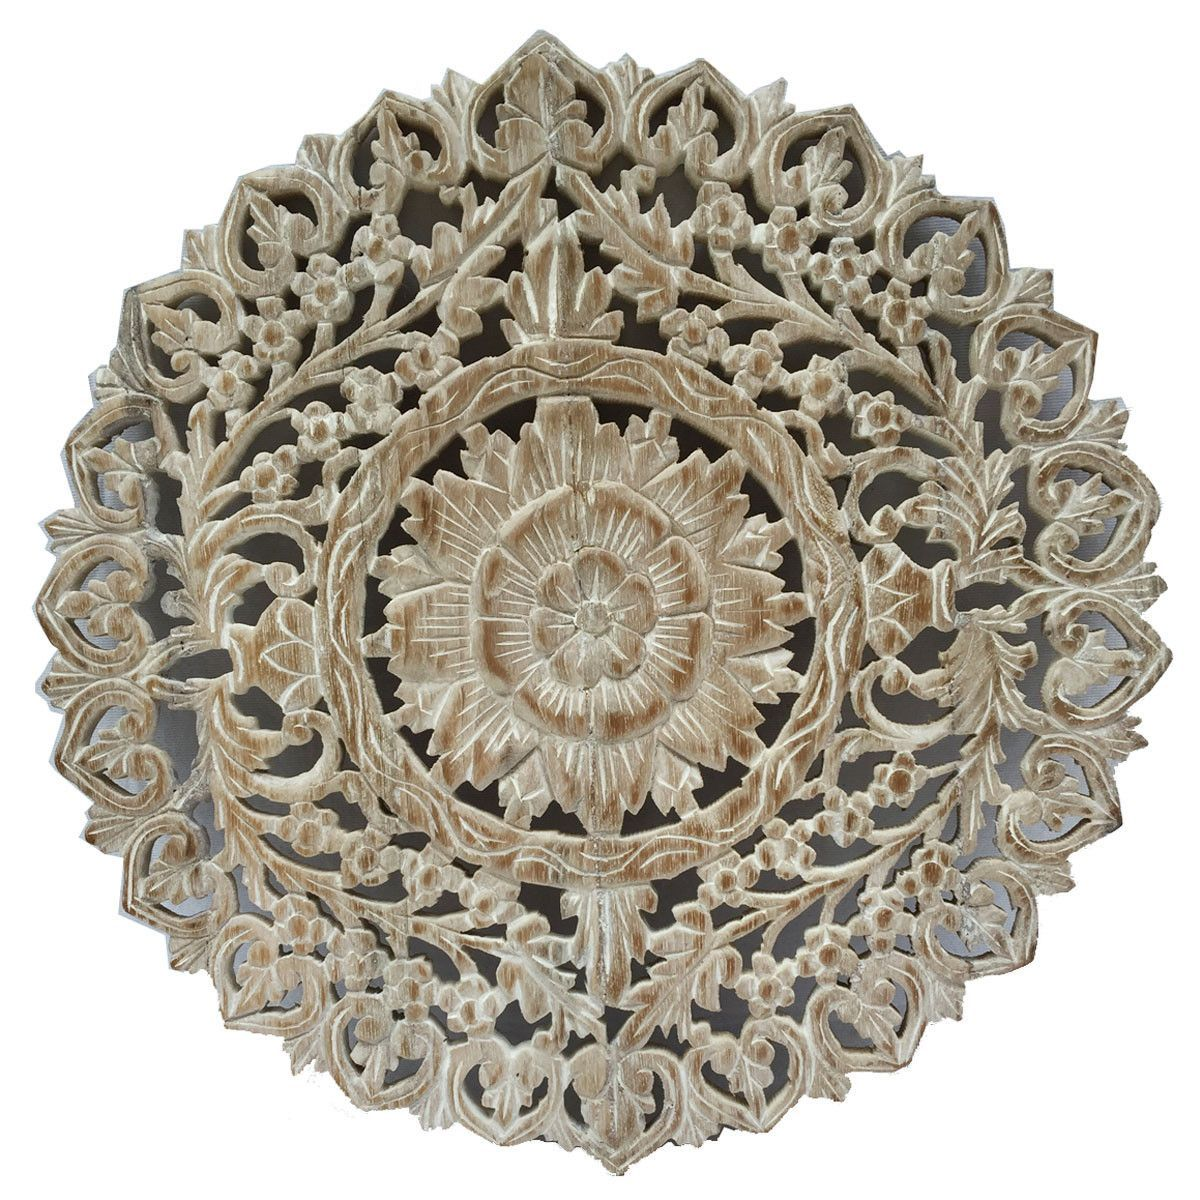 Oriental Round Carved Wood Wall Decor. Decorative Floral Wall Plaques. Teak  Wood Wall Hangings. Lotus Wood Carved Wall Art. Color Options Available 24